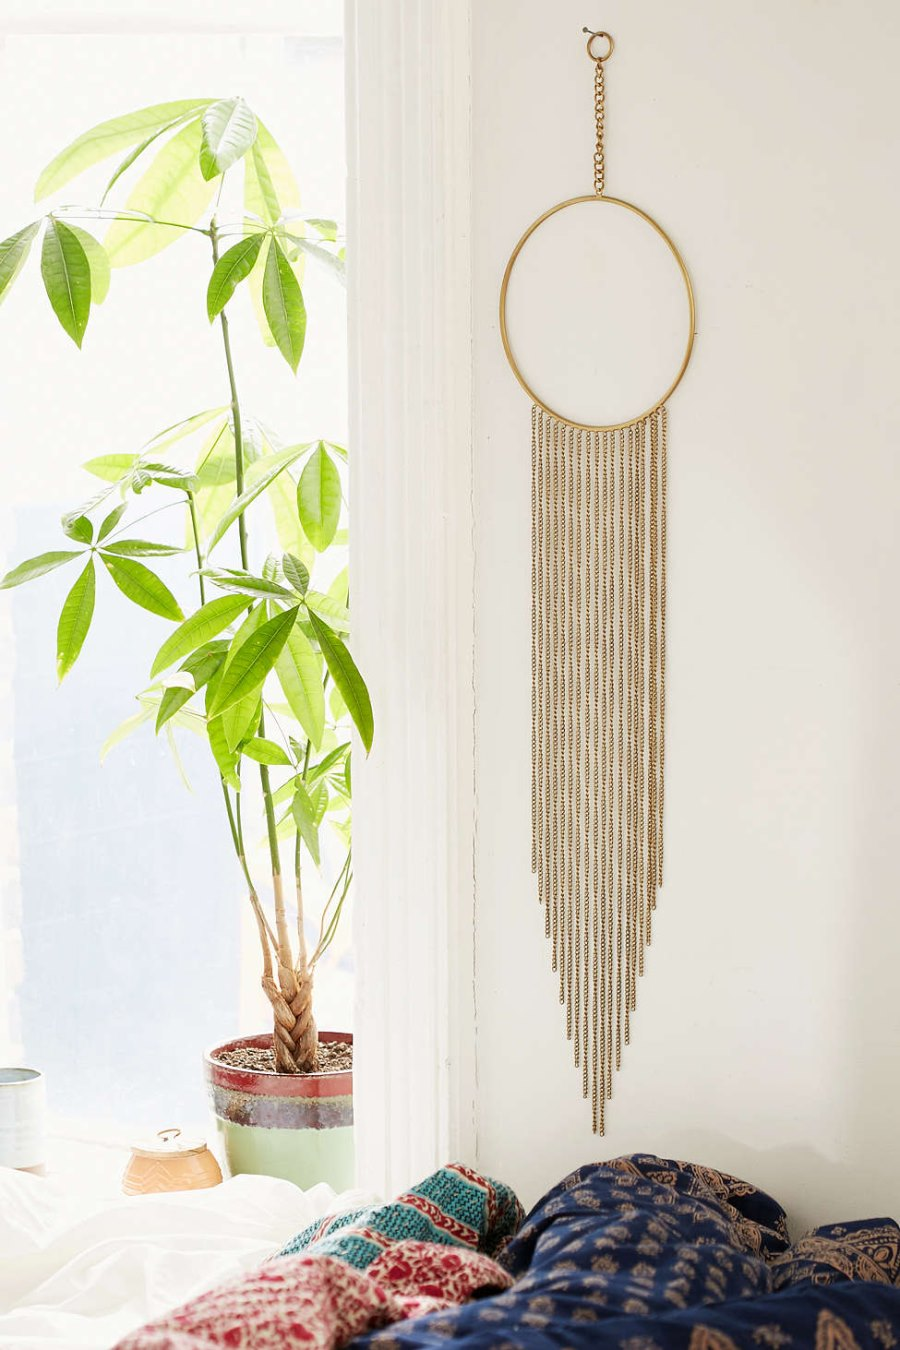 Bronze wall hanging from Urban Outfitters